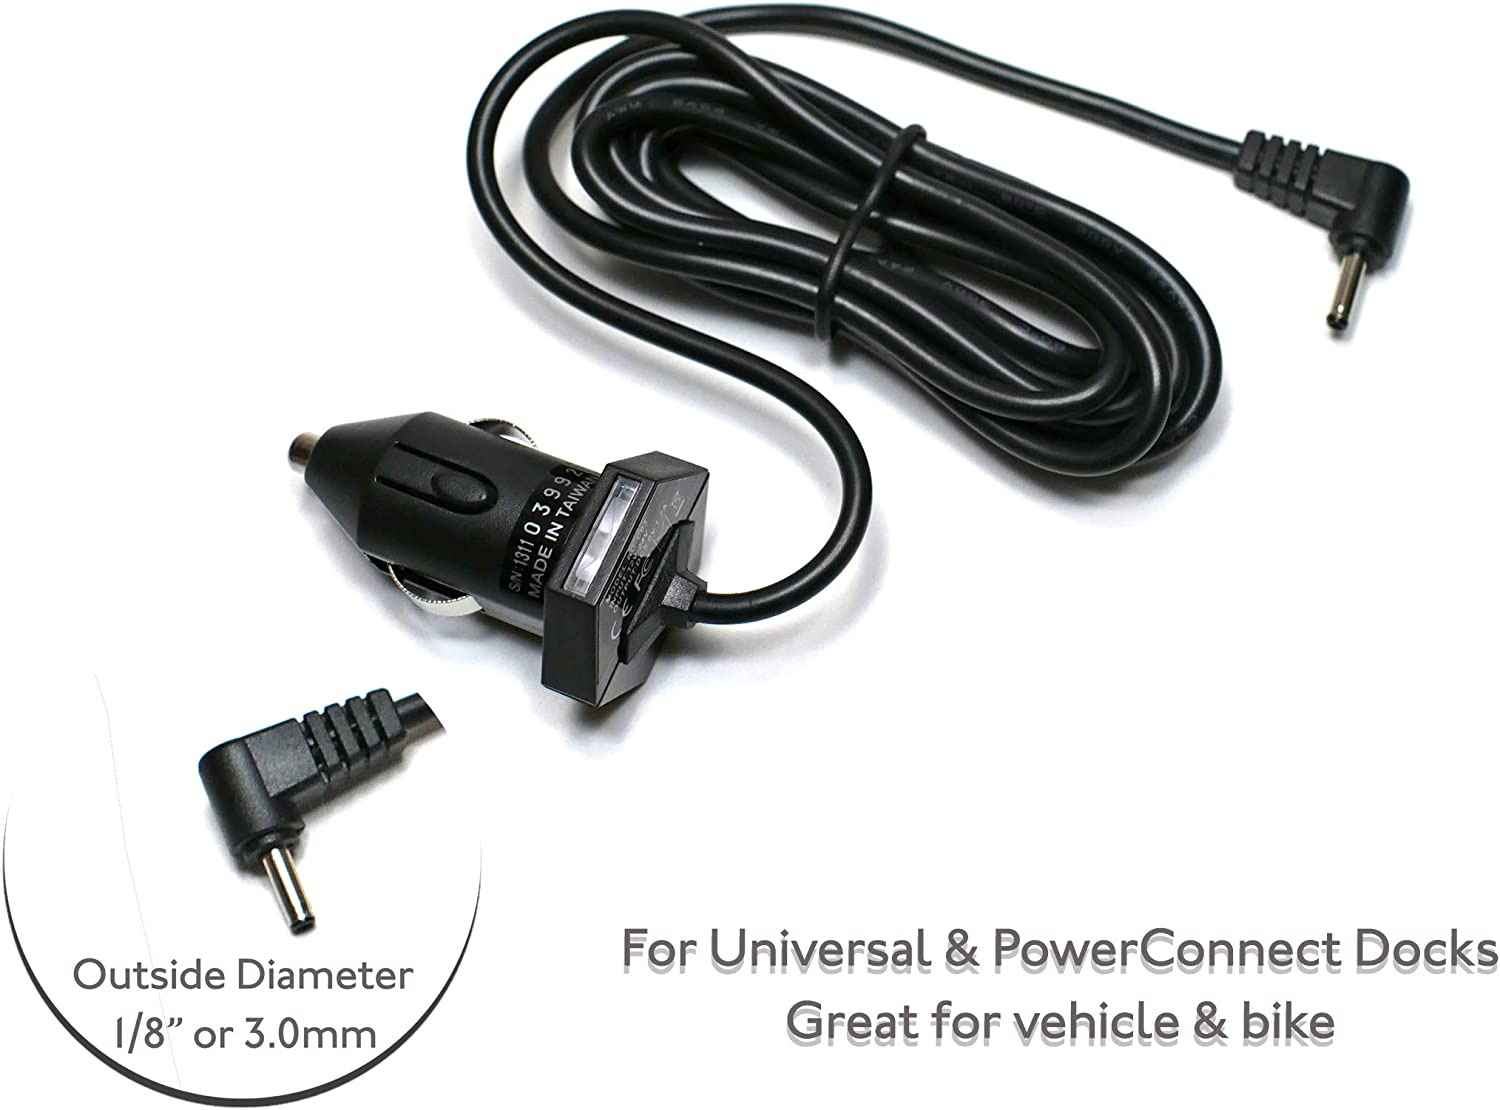 EDO Tech Ultra Compact 5V Car Charger Vehicle Power Cord for Sirius XM SUPV1 UC8 SV-3 Sportster Starmate Stratus 3 4 136-4458 Inv2 Stiletto Xm2Go Gex-Inno2 XpressRC Sportscaster Universal Radio Dock